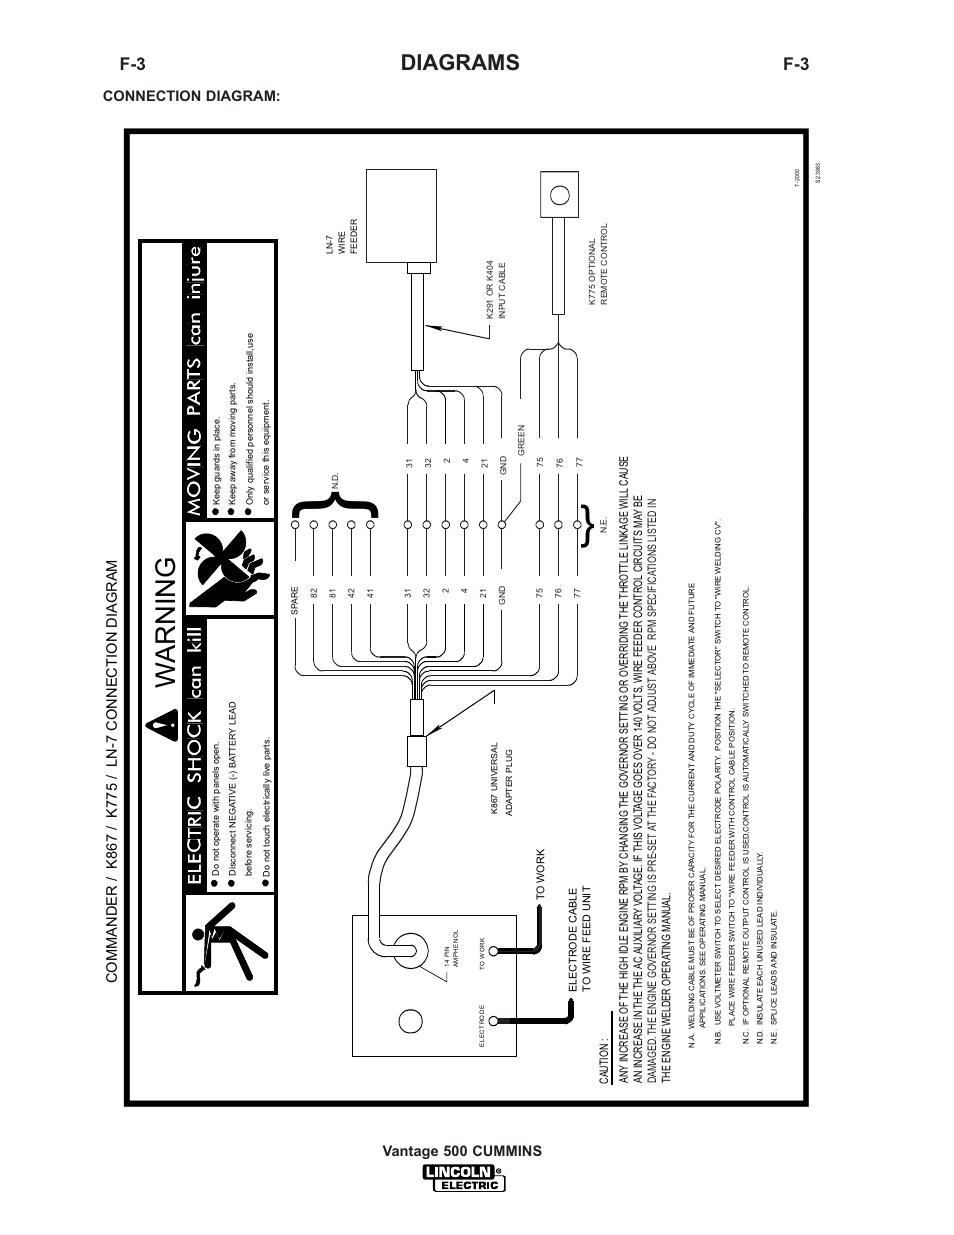 Warning  Diagrams  Vantage 500 Cummins Connection Diagram